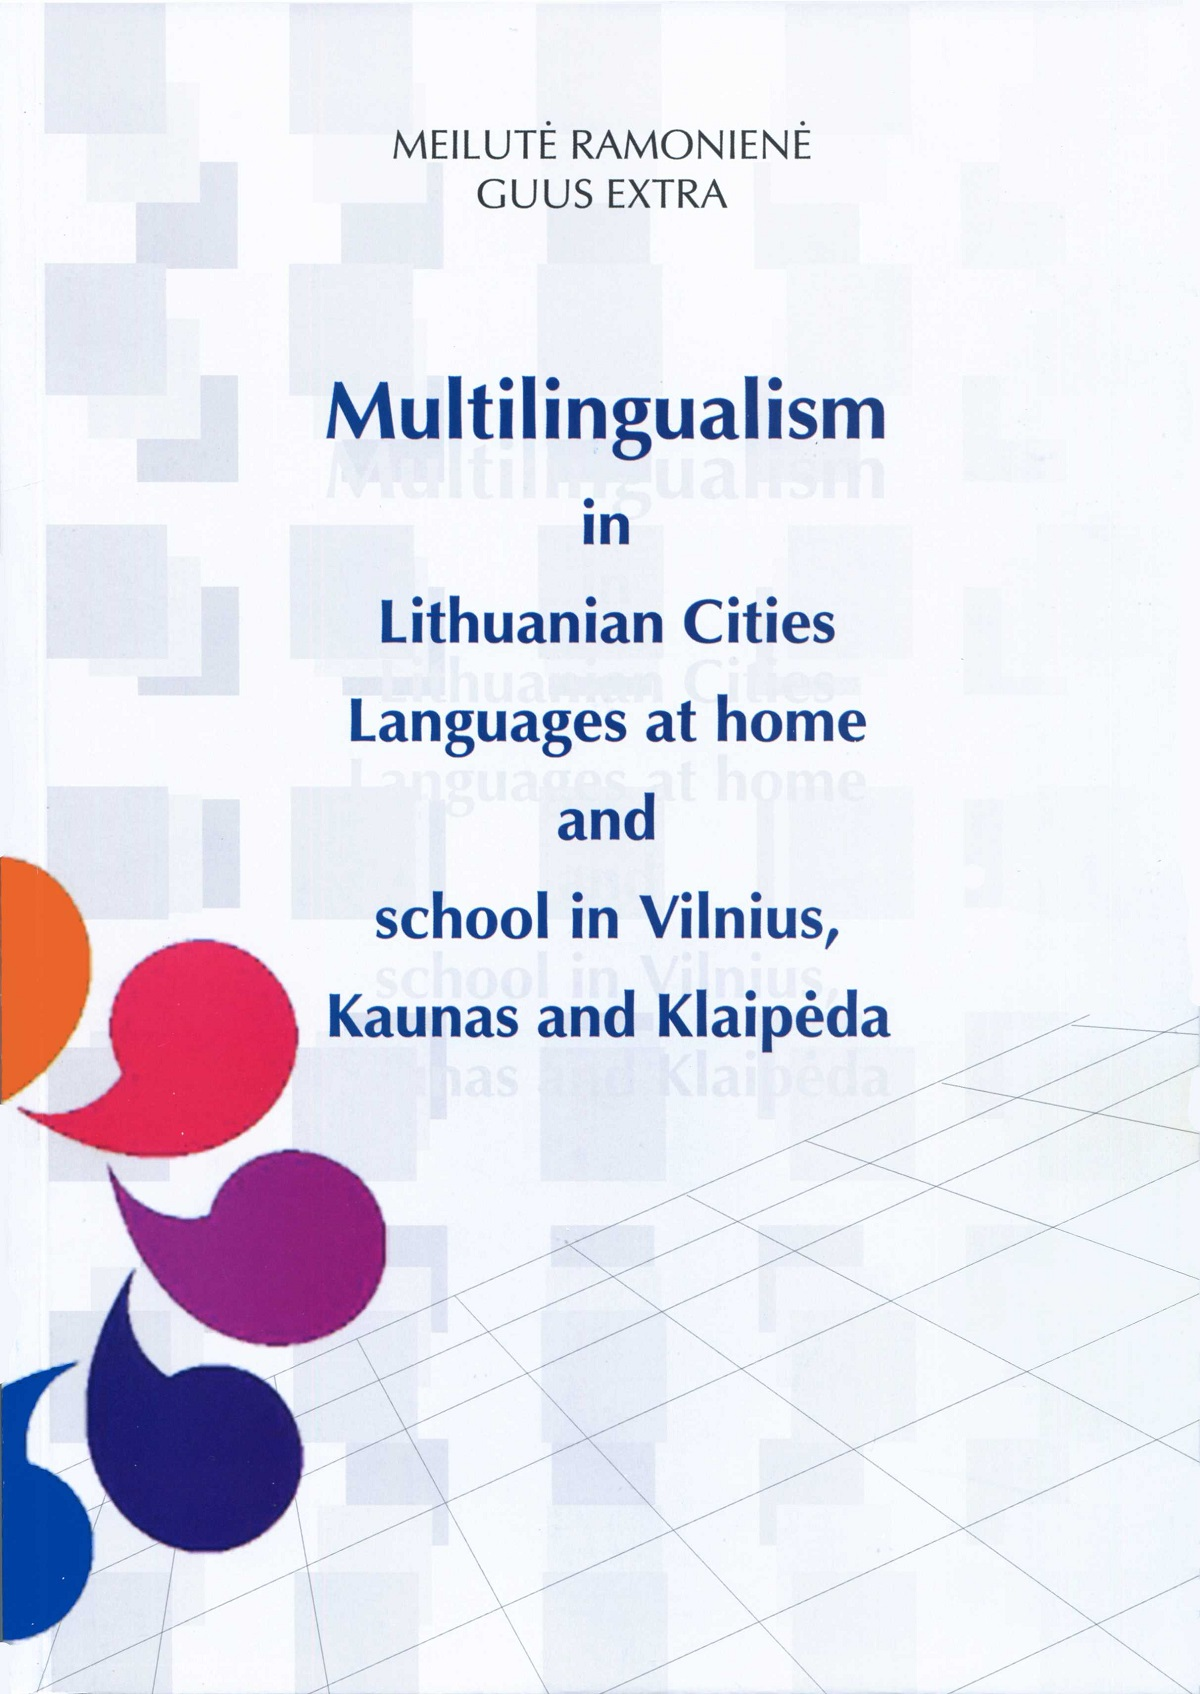 Multilingualism in Lithuanian Cities: Languages at Home and School in Vilnius, Kaunas and Klaipėda